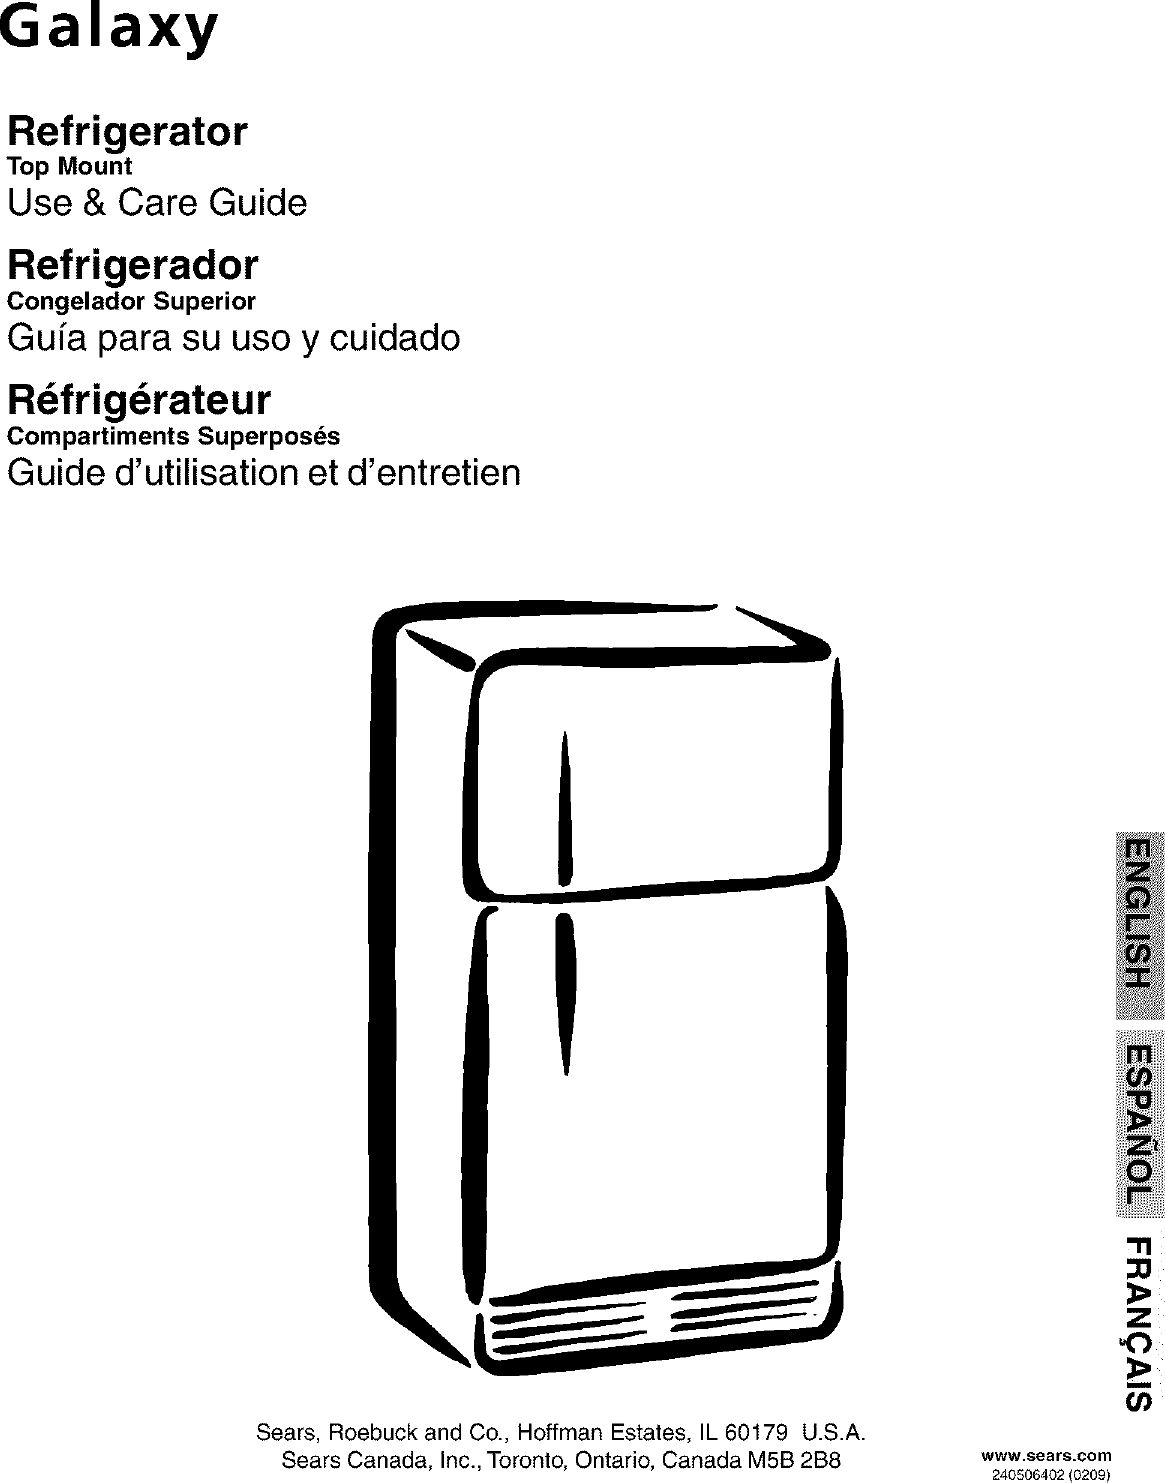 Galaxy 25363802202 User Manual SEARS/REFRIGERATOR Manuals